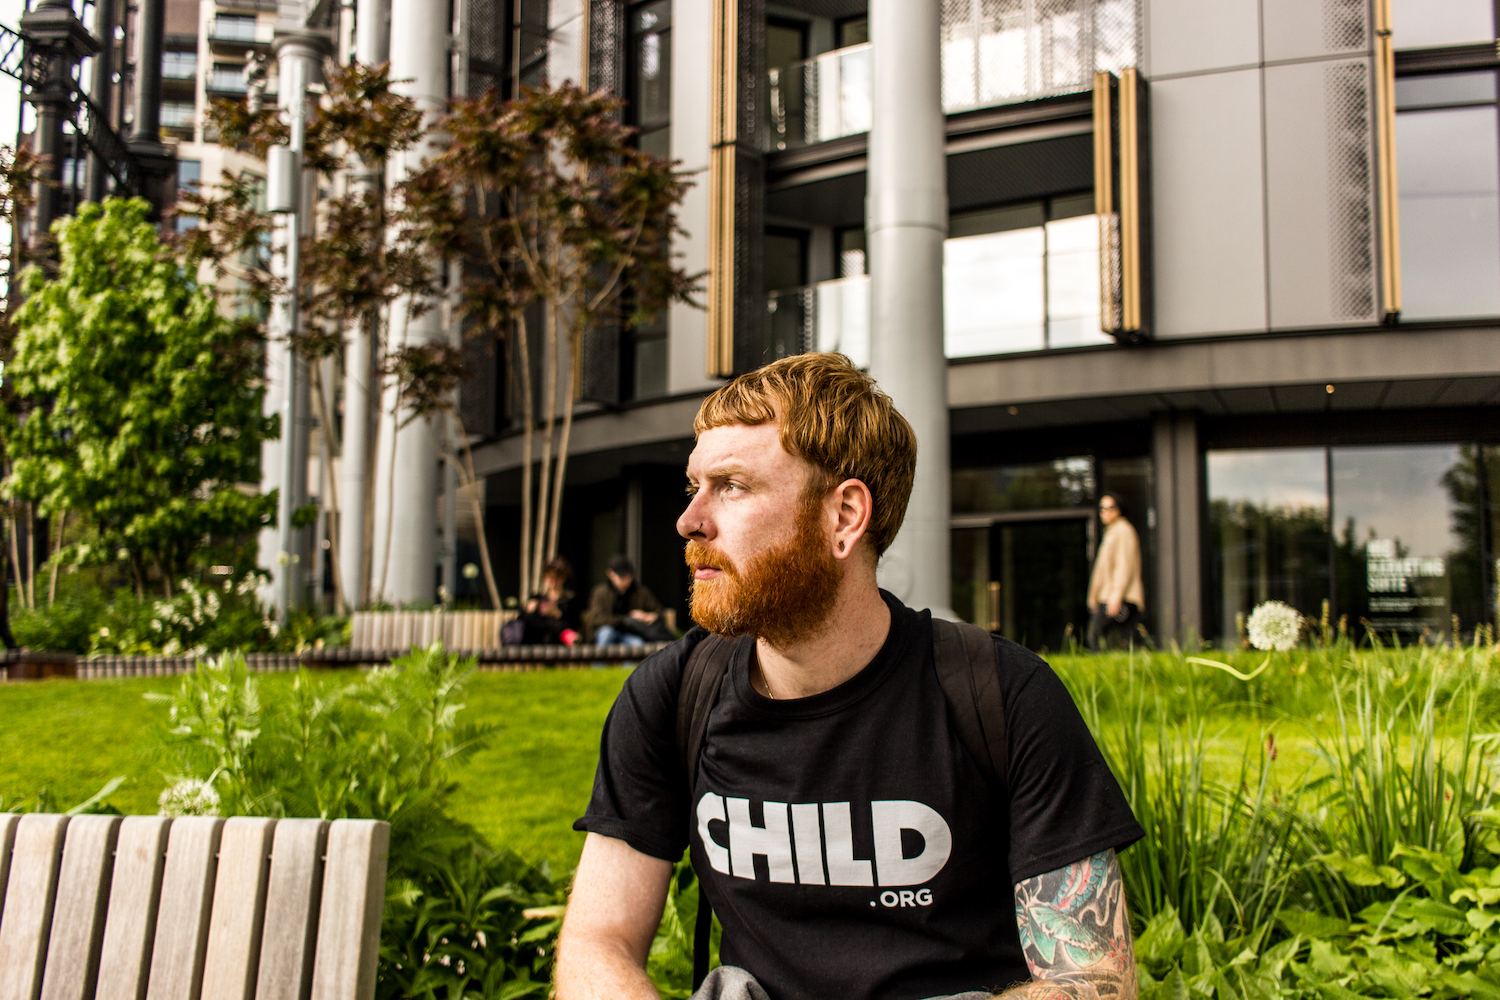 Professional Photography White Man With Beard Wearing Black Child.org T-Shirt Sitting On Bench In Front Of Bushes And Metal Buildings In Camden London